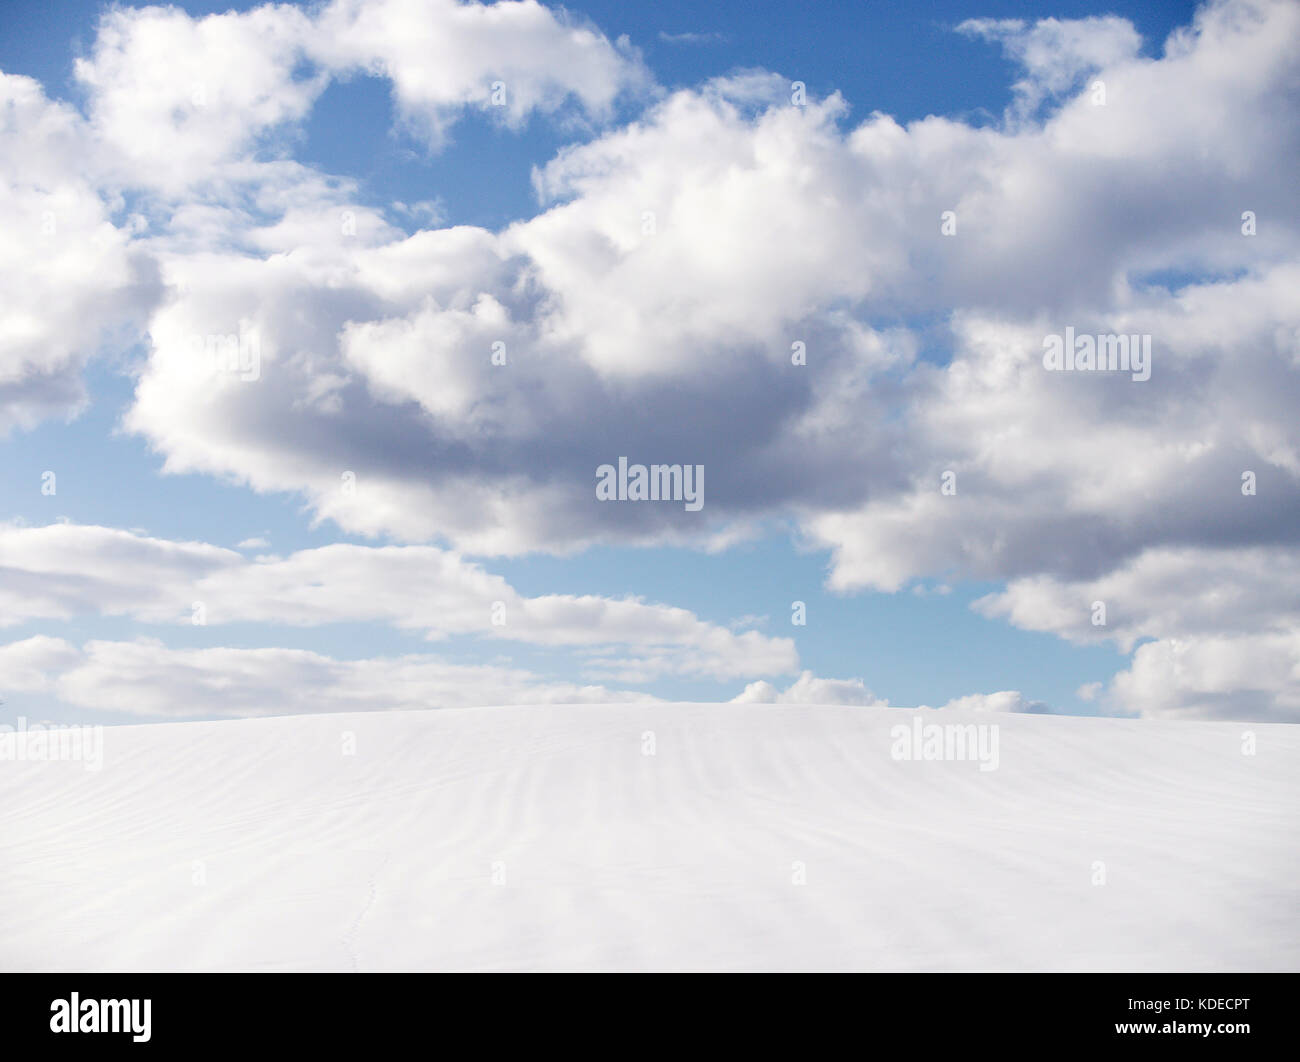 Empy snowfield with blue sky and clouds at Biei, Hokkaido, Japan, during winter - Stock Image